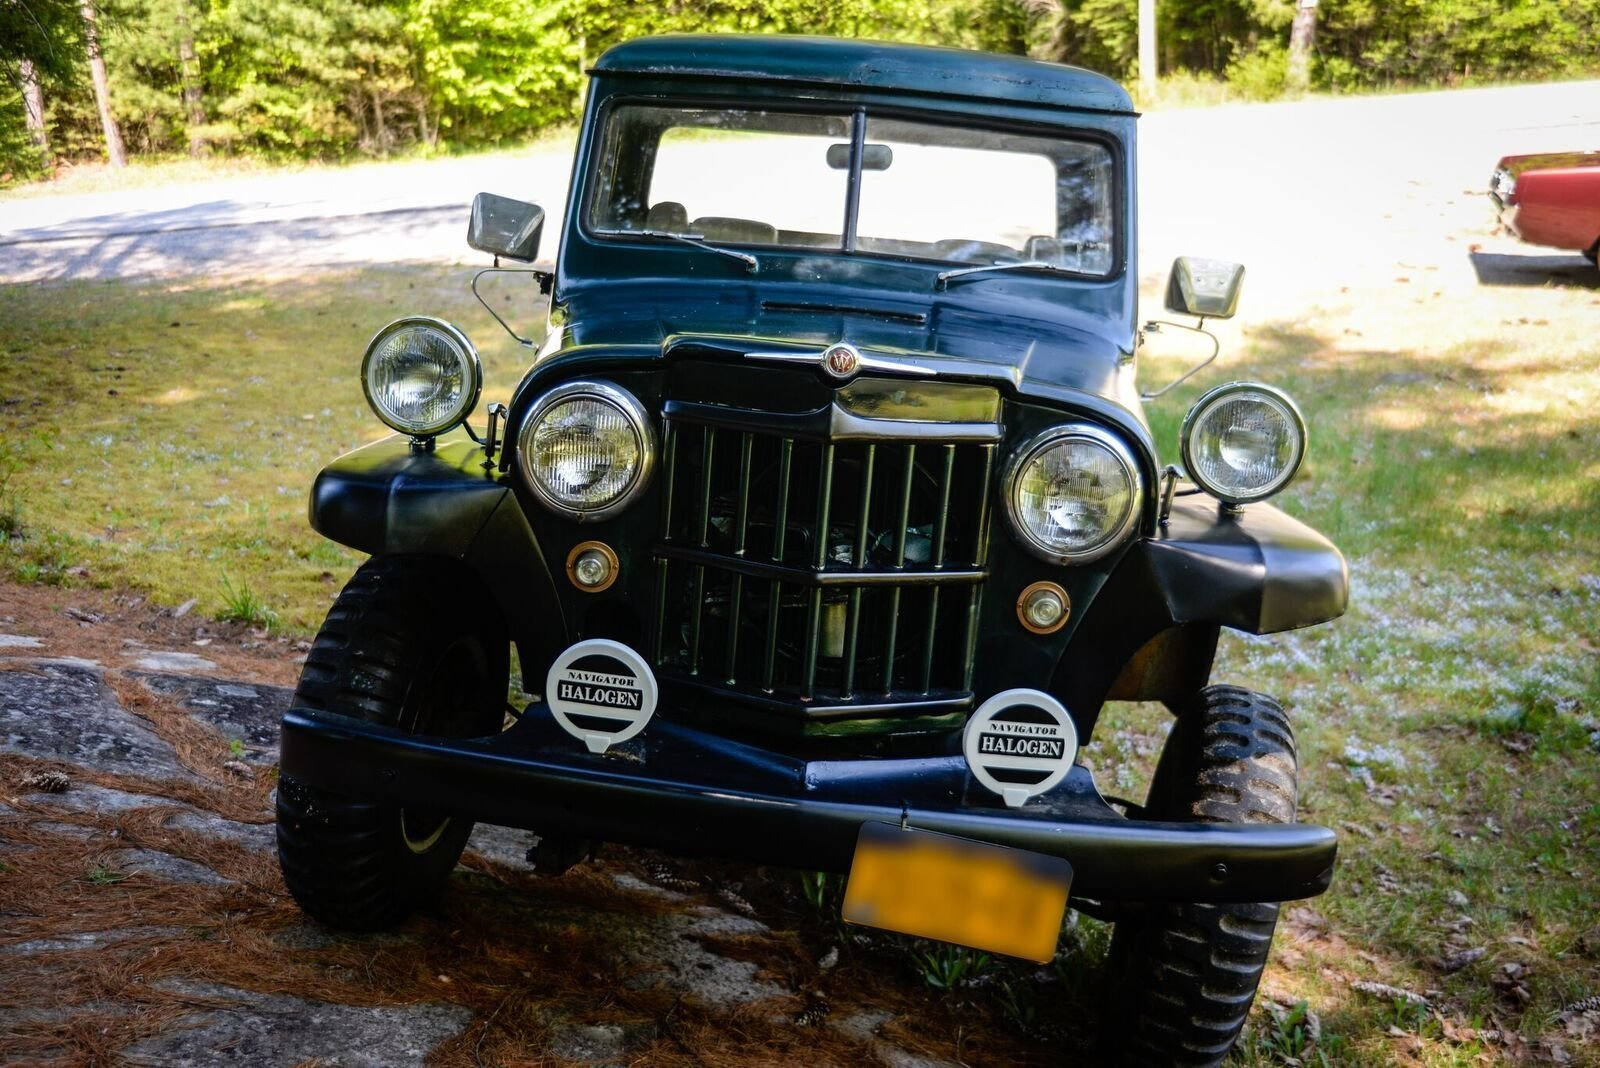 1960 Willys Overland Saratoga Auto Auction Jeep For Sale Used